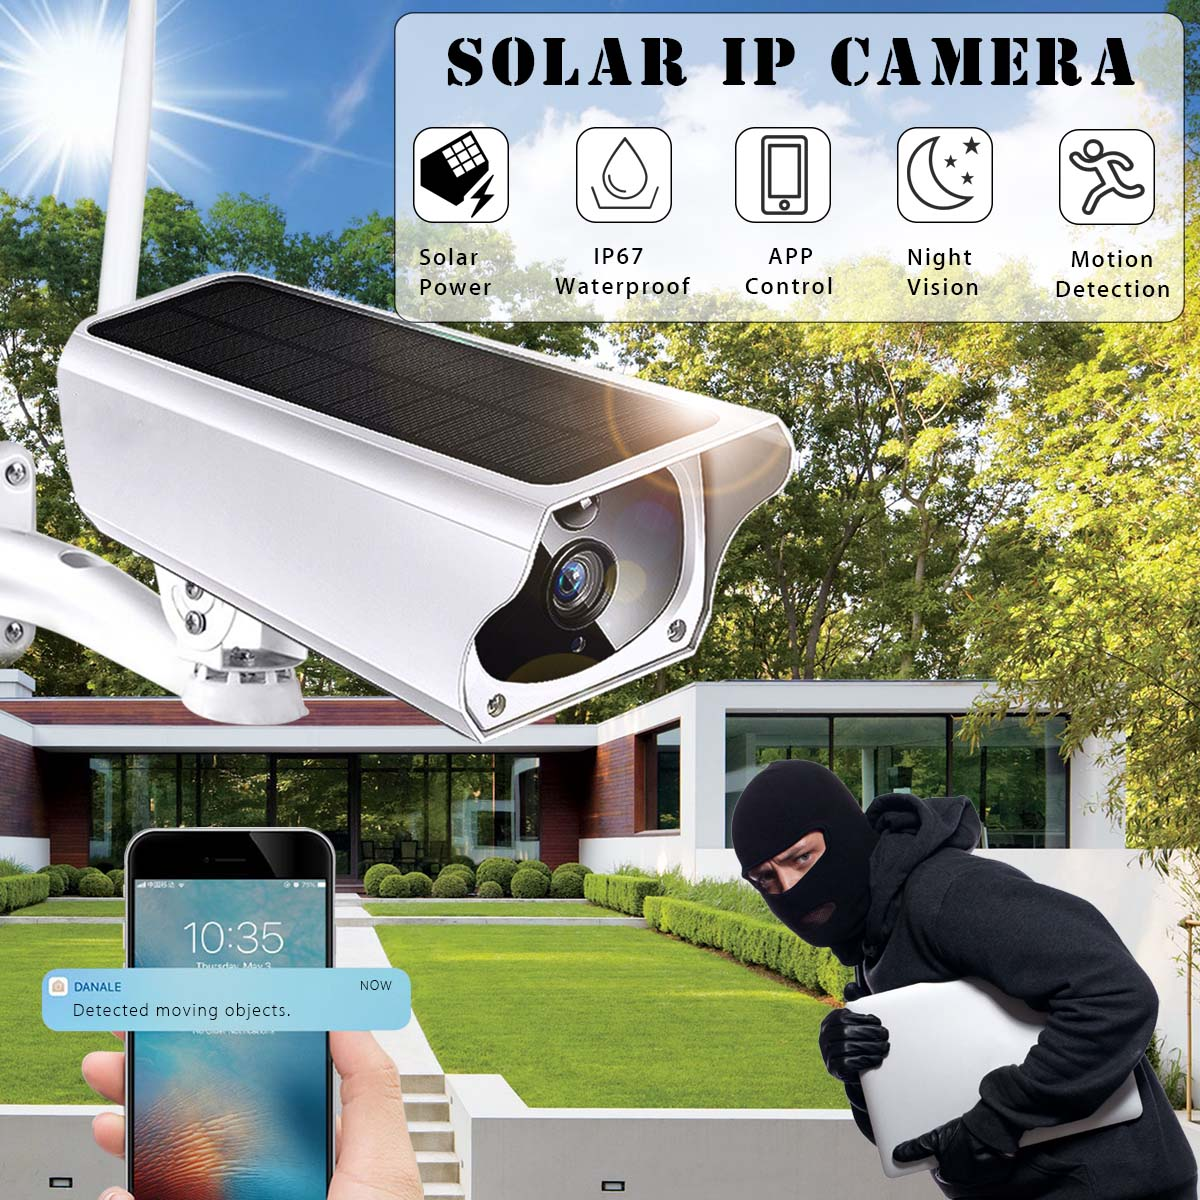 1080P Solar Camera Wireless Outdoor IP67 Waterproof Night Vision App Remote Monitoring Wifi Security IP Surveillance Camera1080P Solar Camera Wireless Outdoor IP67 Waterproof Night Vision App Remote Monitoring Wifi Security IP Surveillance Camera